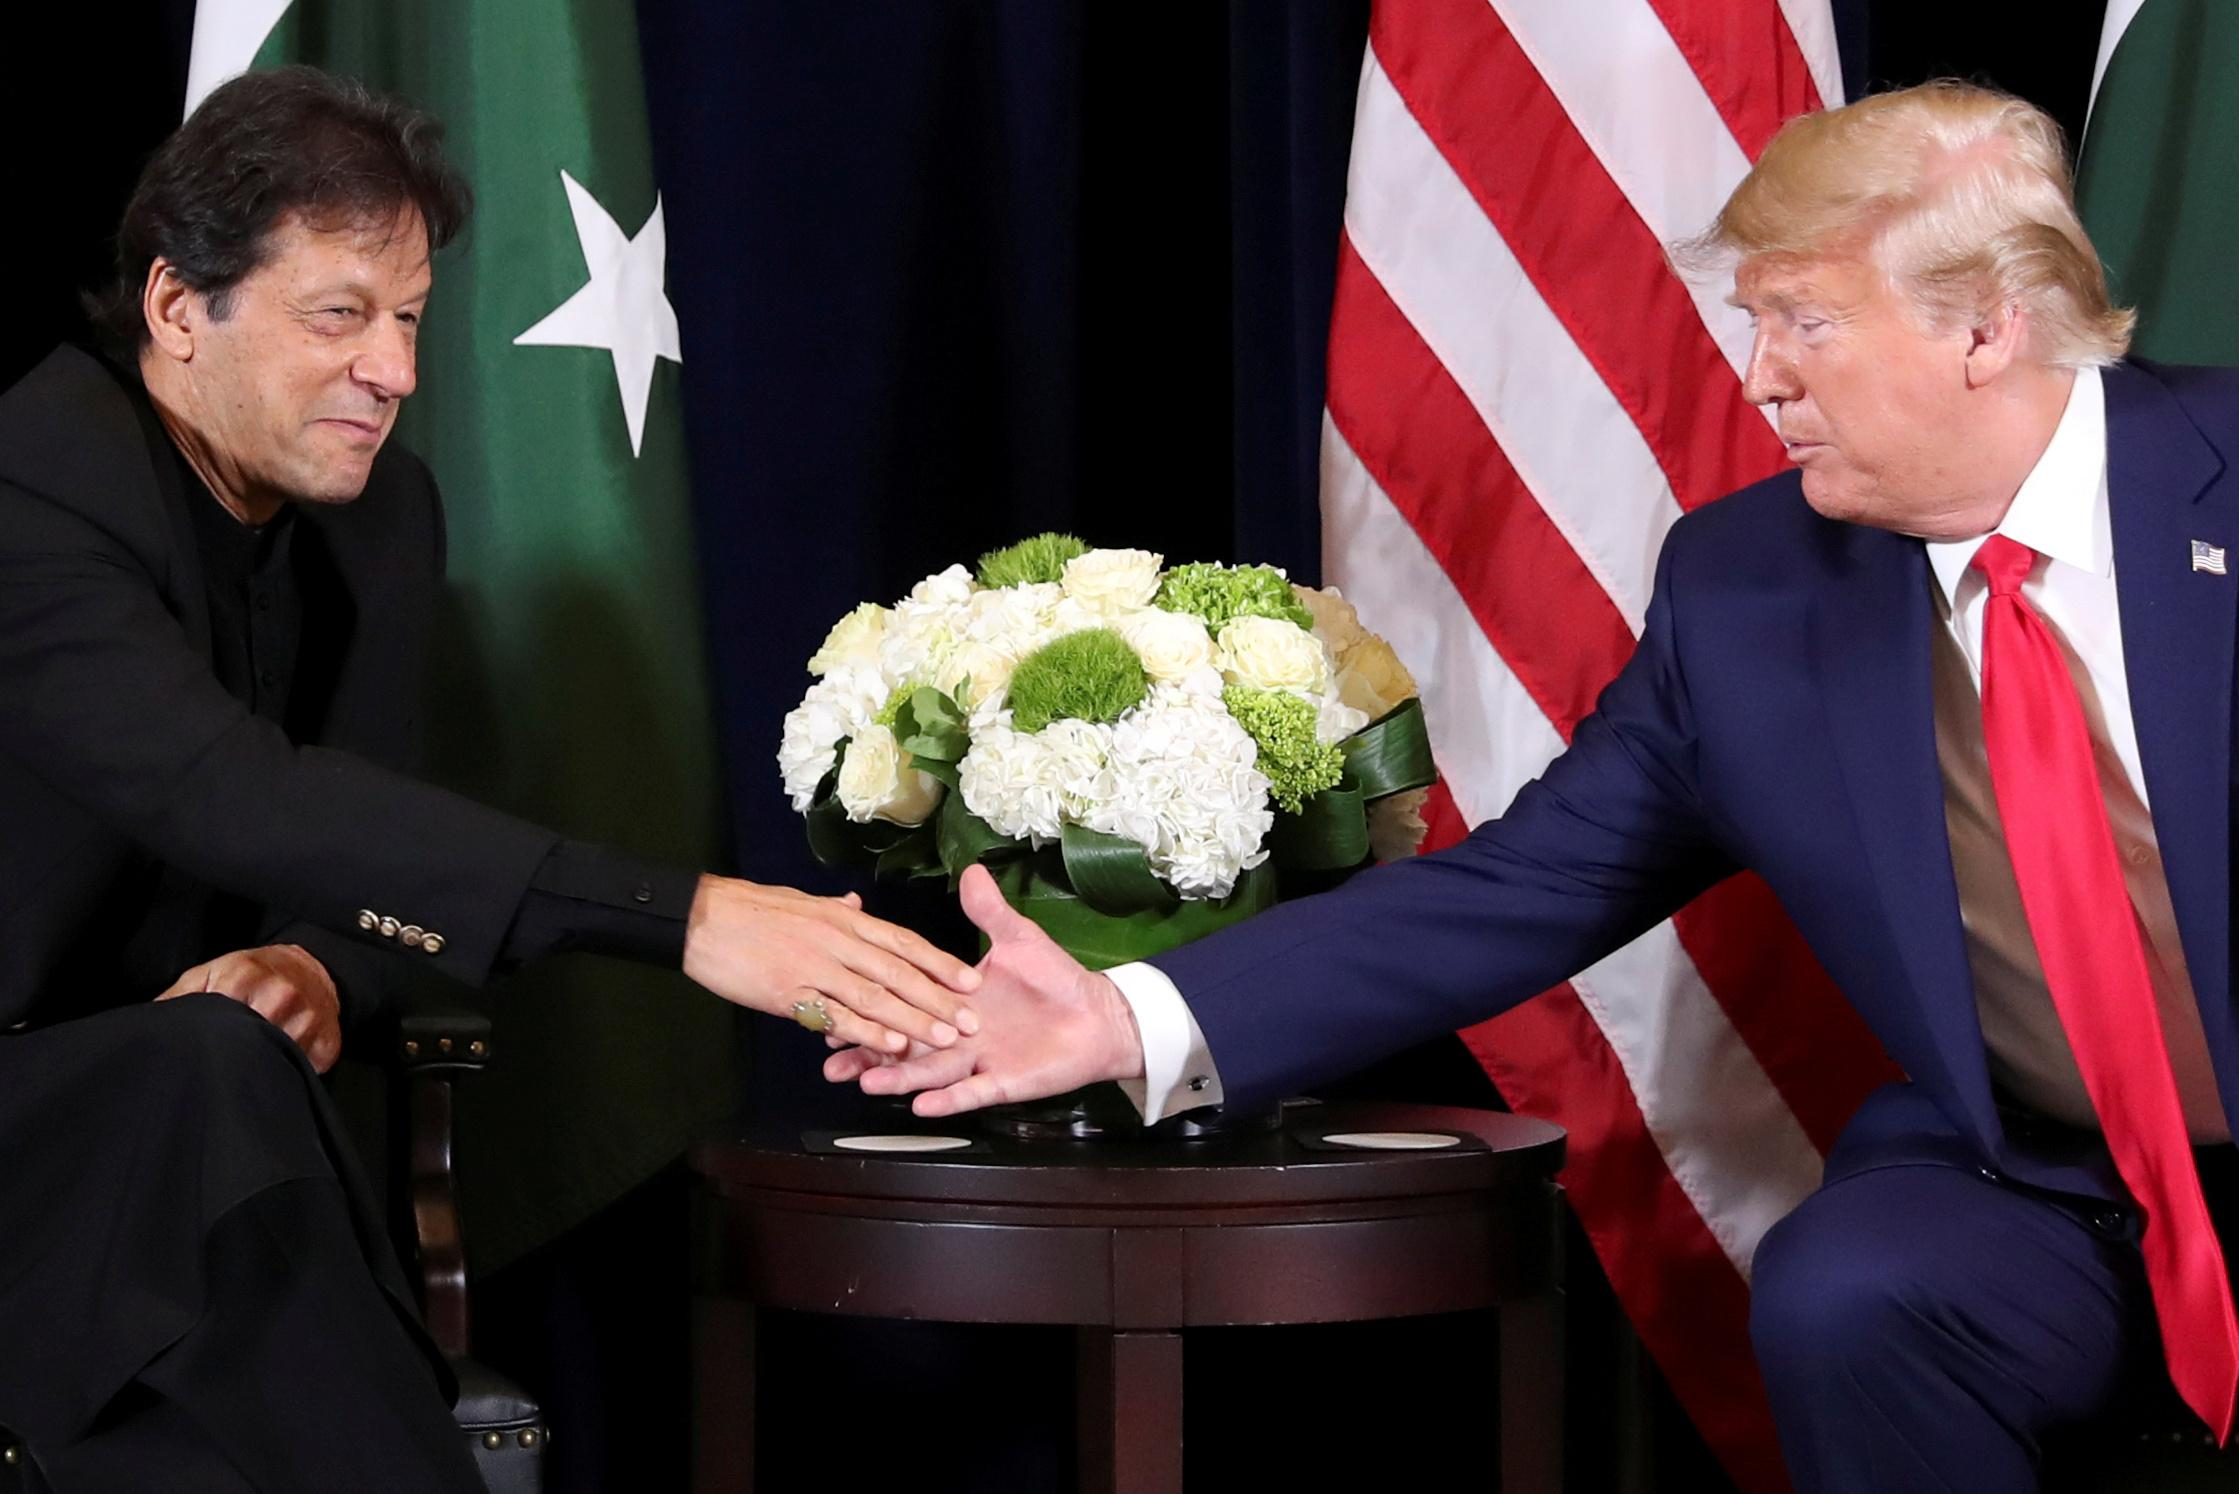 Trump hopes India and Pakistan 'come together' on Kashmir, Khan...